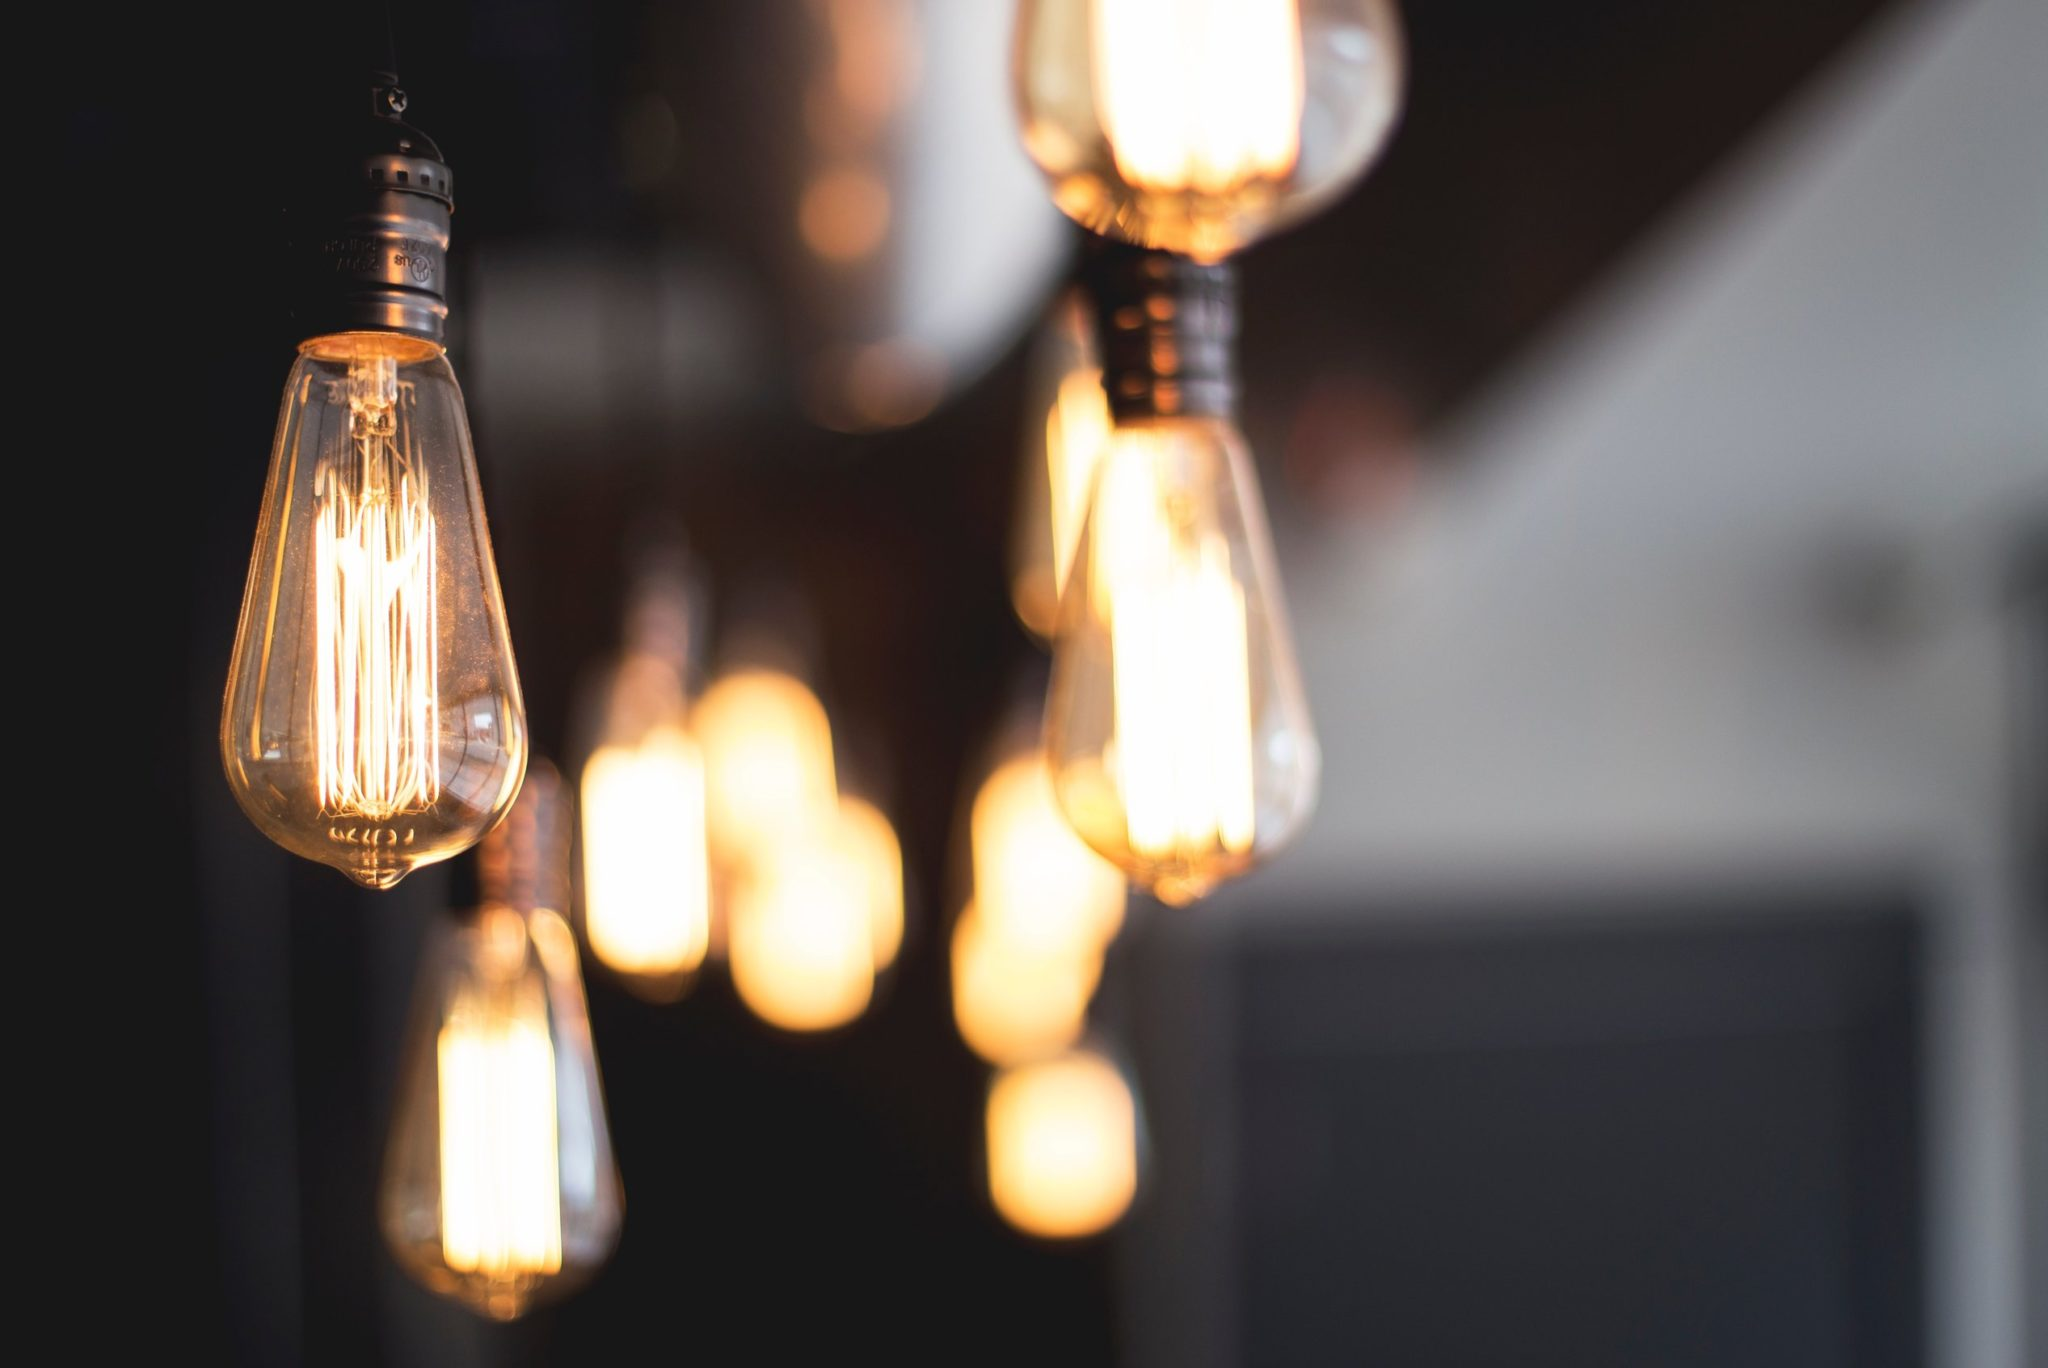 The Adult Bible - How to change a lightbulb